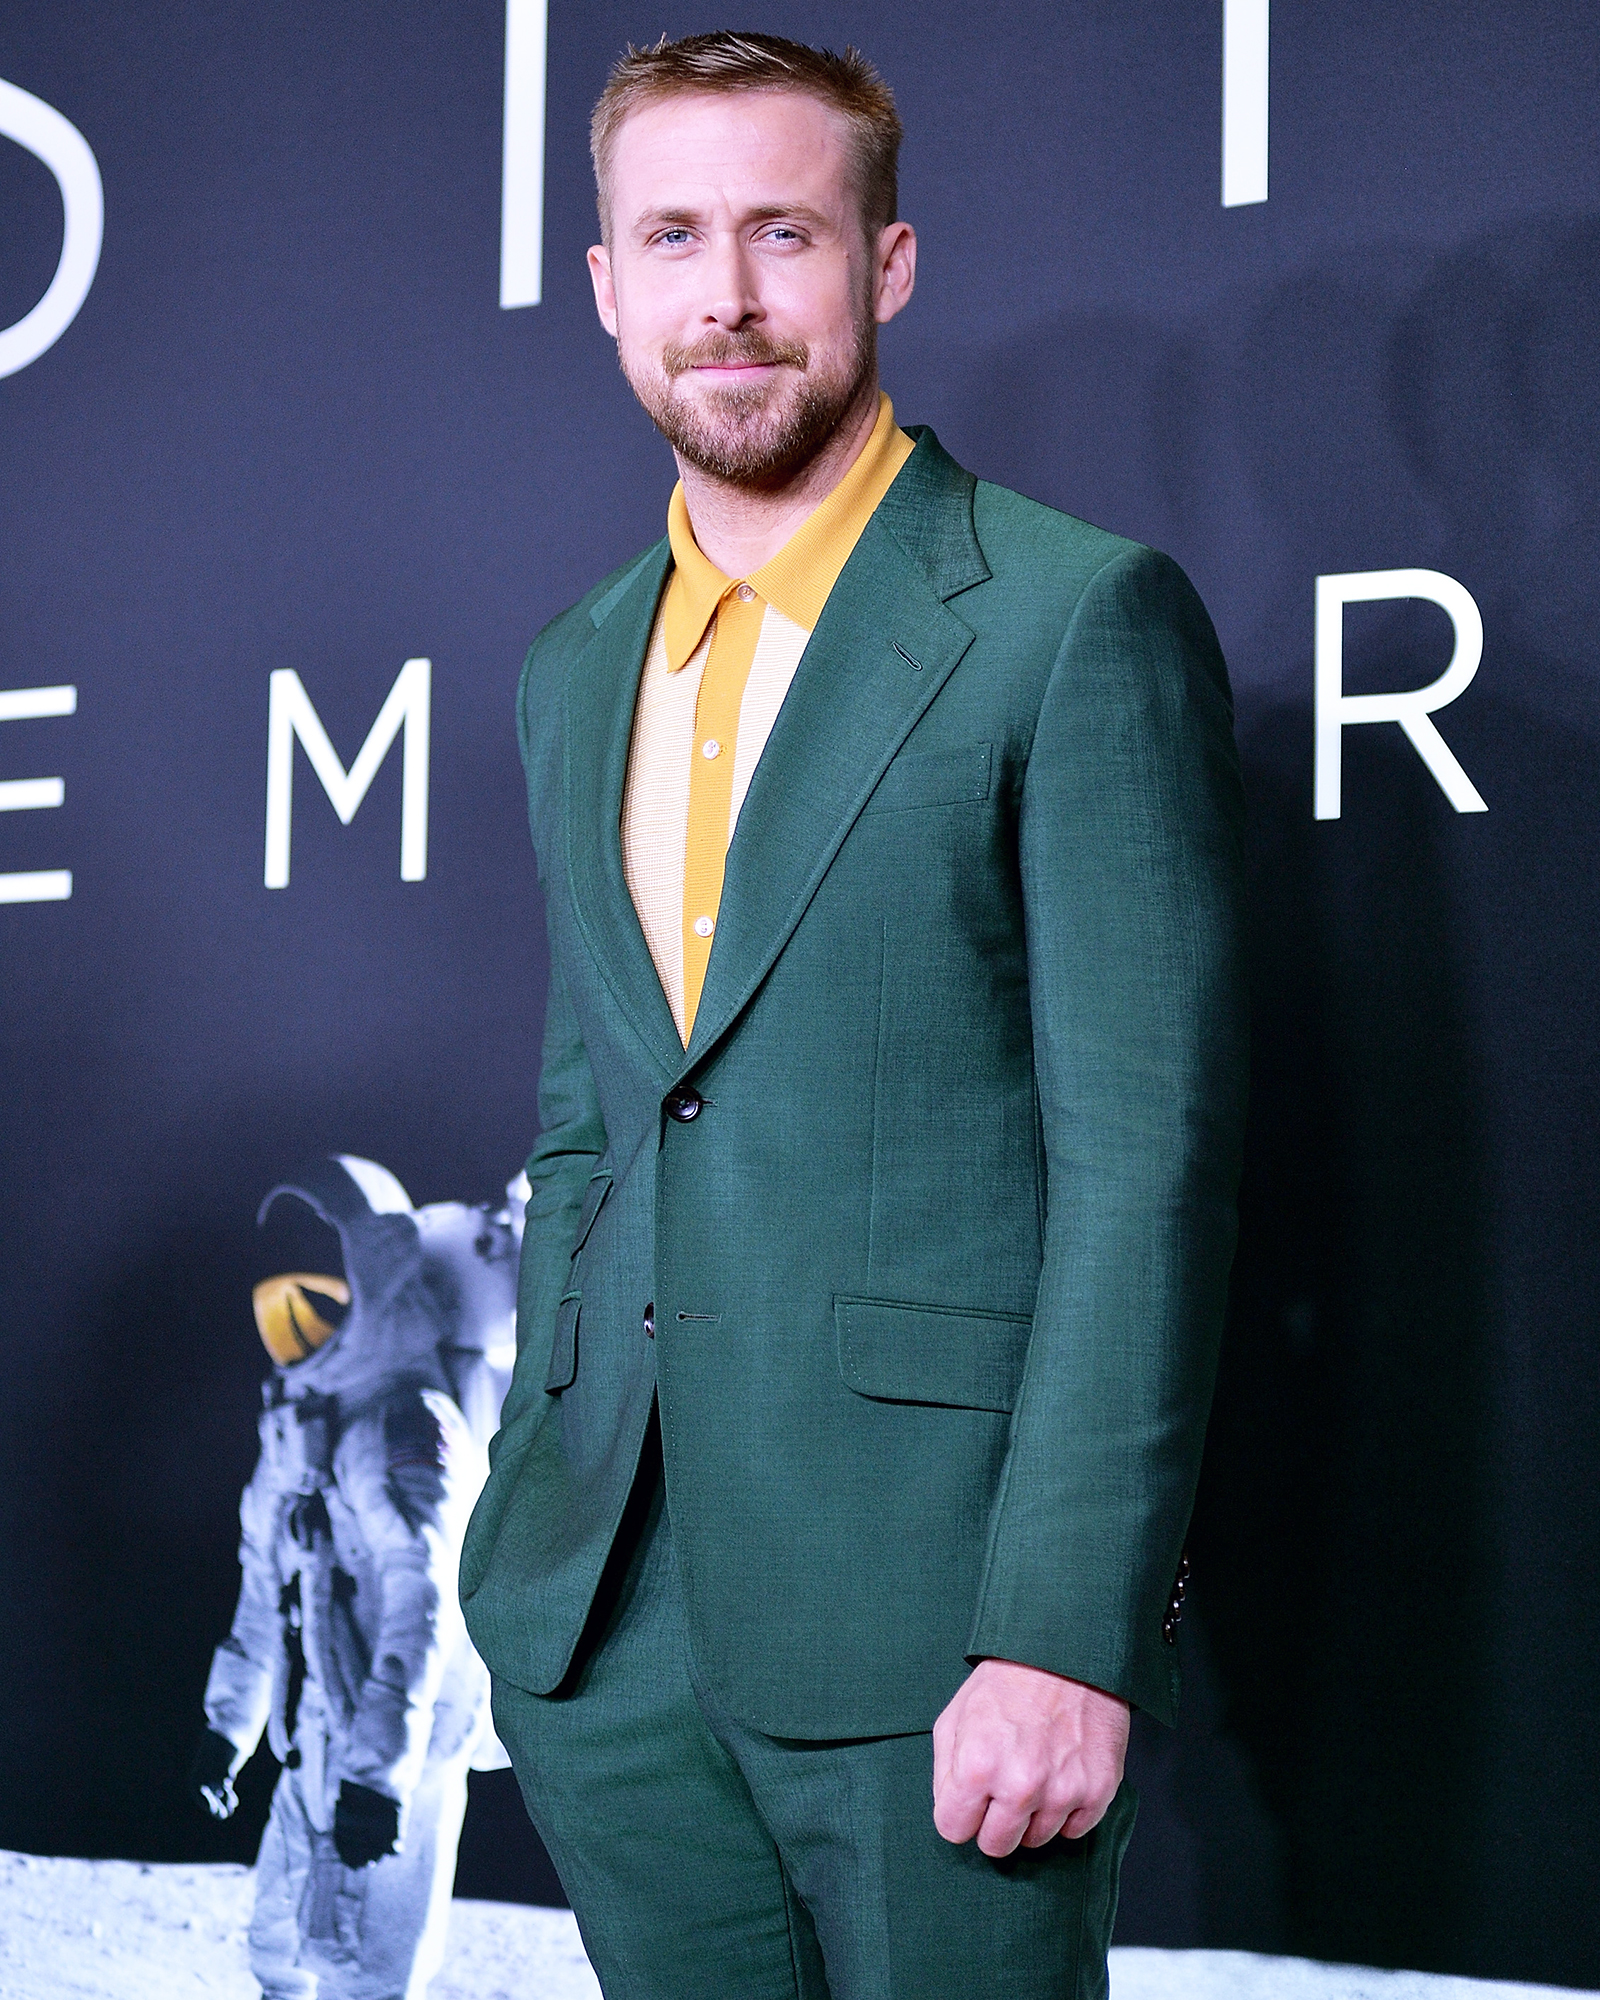 """Celebrities Who Own Restaurants: Jay-Z, Ryan Gosling, Armie Hammer and More - The Blue Valentine star is part owner of Tagine, a Moroccan restaurant in the heart of Beverly Hills that serves tasty dishes from the North African country such as braised beef couscous and a honey lamb tagine with dates and cinnamon. According to the restaurant's website, the Oscar-nominated actor made his foray into the food industry after tasting some of Moroccan-born chef Abdessamad Benameur's food at a Hollywood event and declaring he """"would eat everyday for the rest of his life."""""""